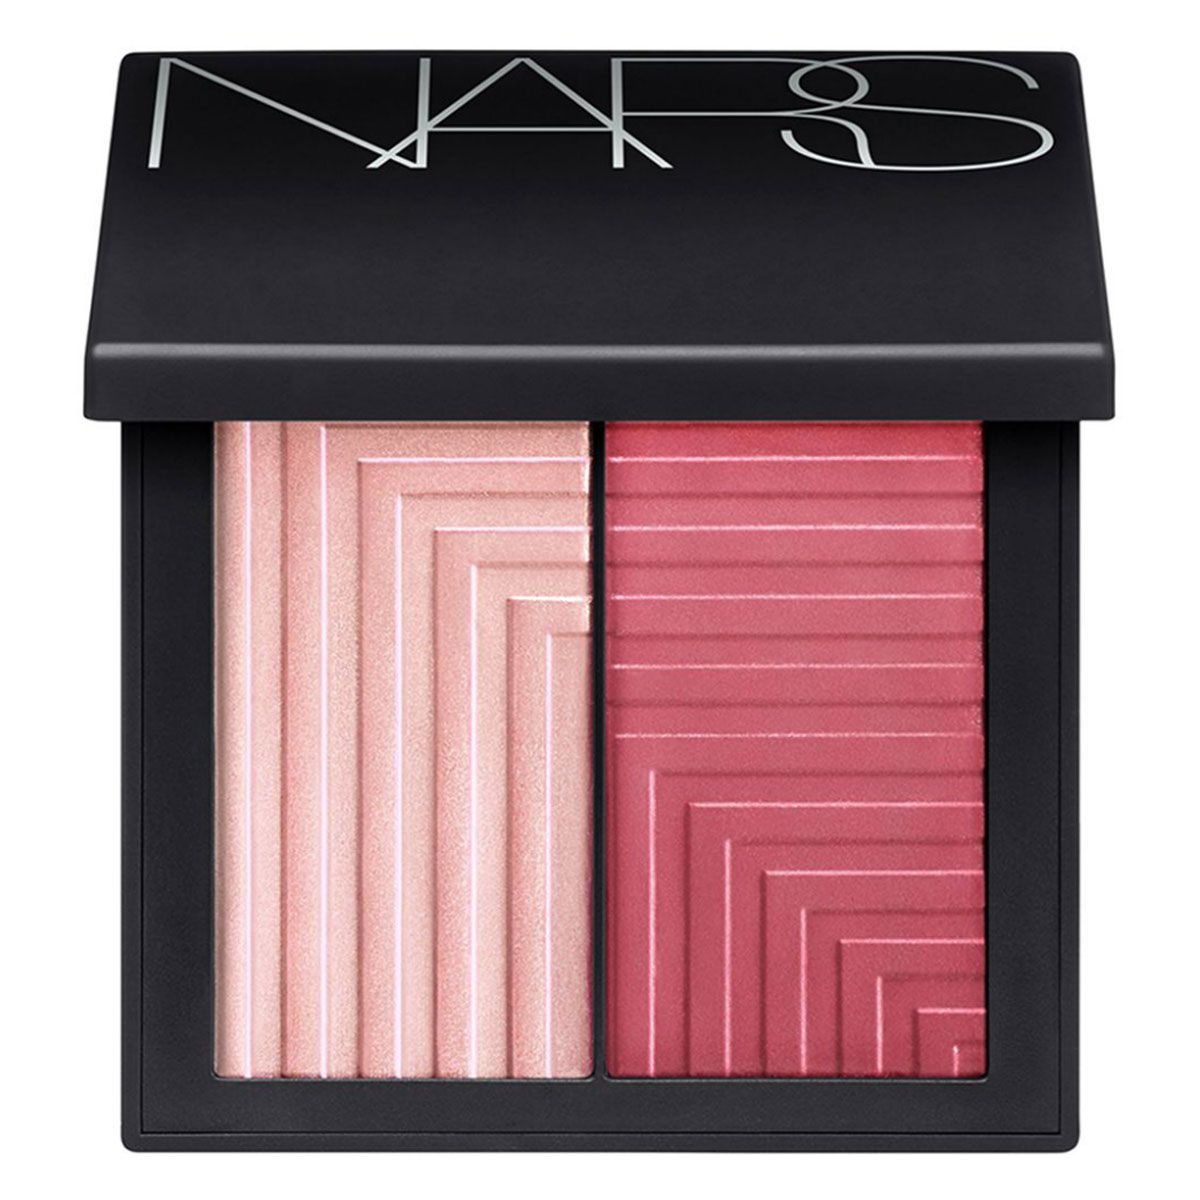 """Warm up cheeks with the darker shade, then use the pink champagne one to highlight all over. <em>NARS Dual-Intensity Blush in Adoration, $45, <a target=""""_blank"""" href=""""http://www.sephora.com/dual-intensity-blush-P393659?skuId=1678135&amp&#x3B;om_mmc=ppc-GG&amp&#x3B;mkwid=Pp9XtJtB&amp&#x3B;pcrid=49113163479&amp&#x3B;pdv=c&amp&#x3B;site=us_search&amp&#x3B;country_switch=us&amp&#x3B;lang=en&amp&#x3B;gclid=CLD4-Mvn8cUCFdQTHwodV0EAGA"""">sephora.com</a>.</em>"""